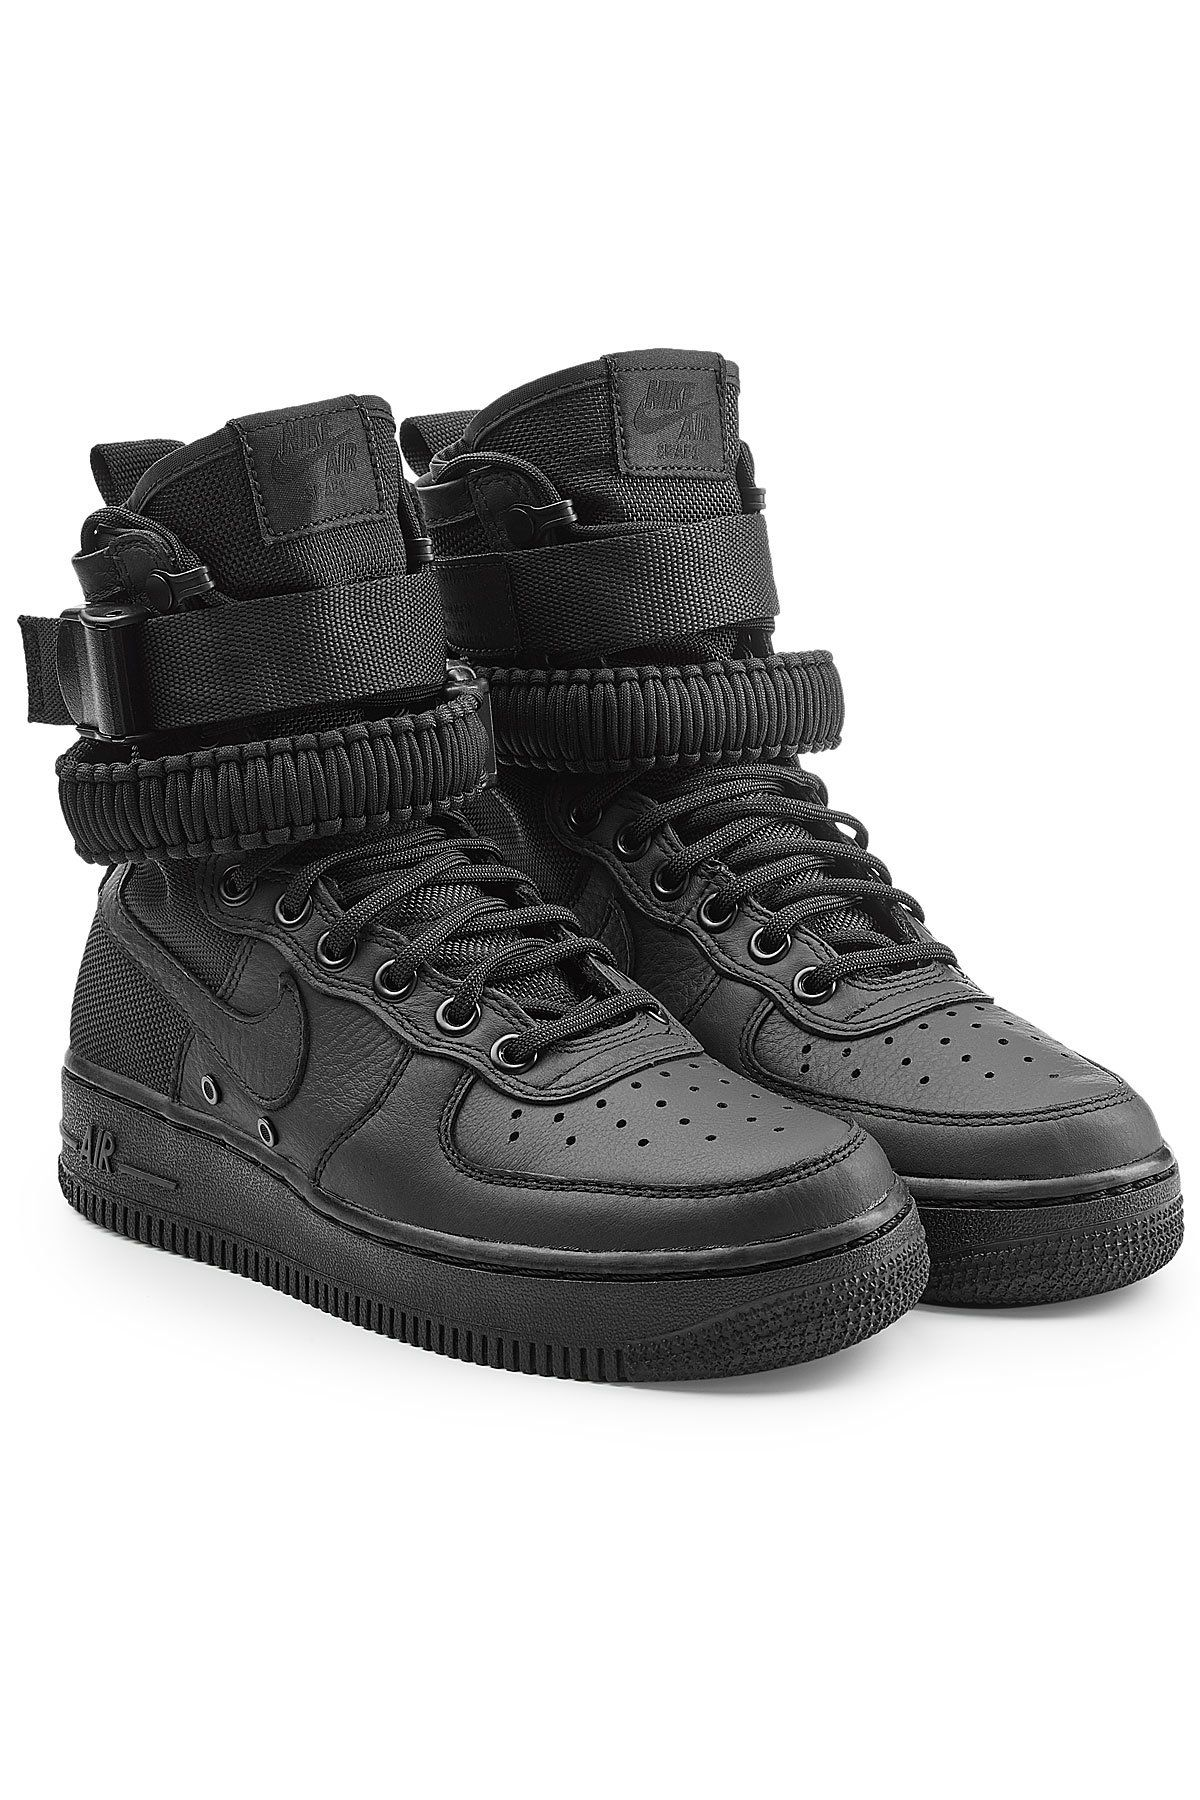 NIKE SF AIR FORCE 1 HIGH TOP SNEAKERS WITH LEATHER.  nike  shoes ... 7f1046fd9